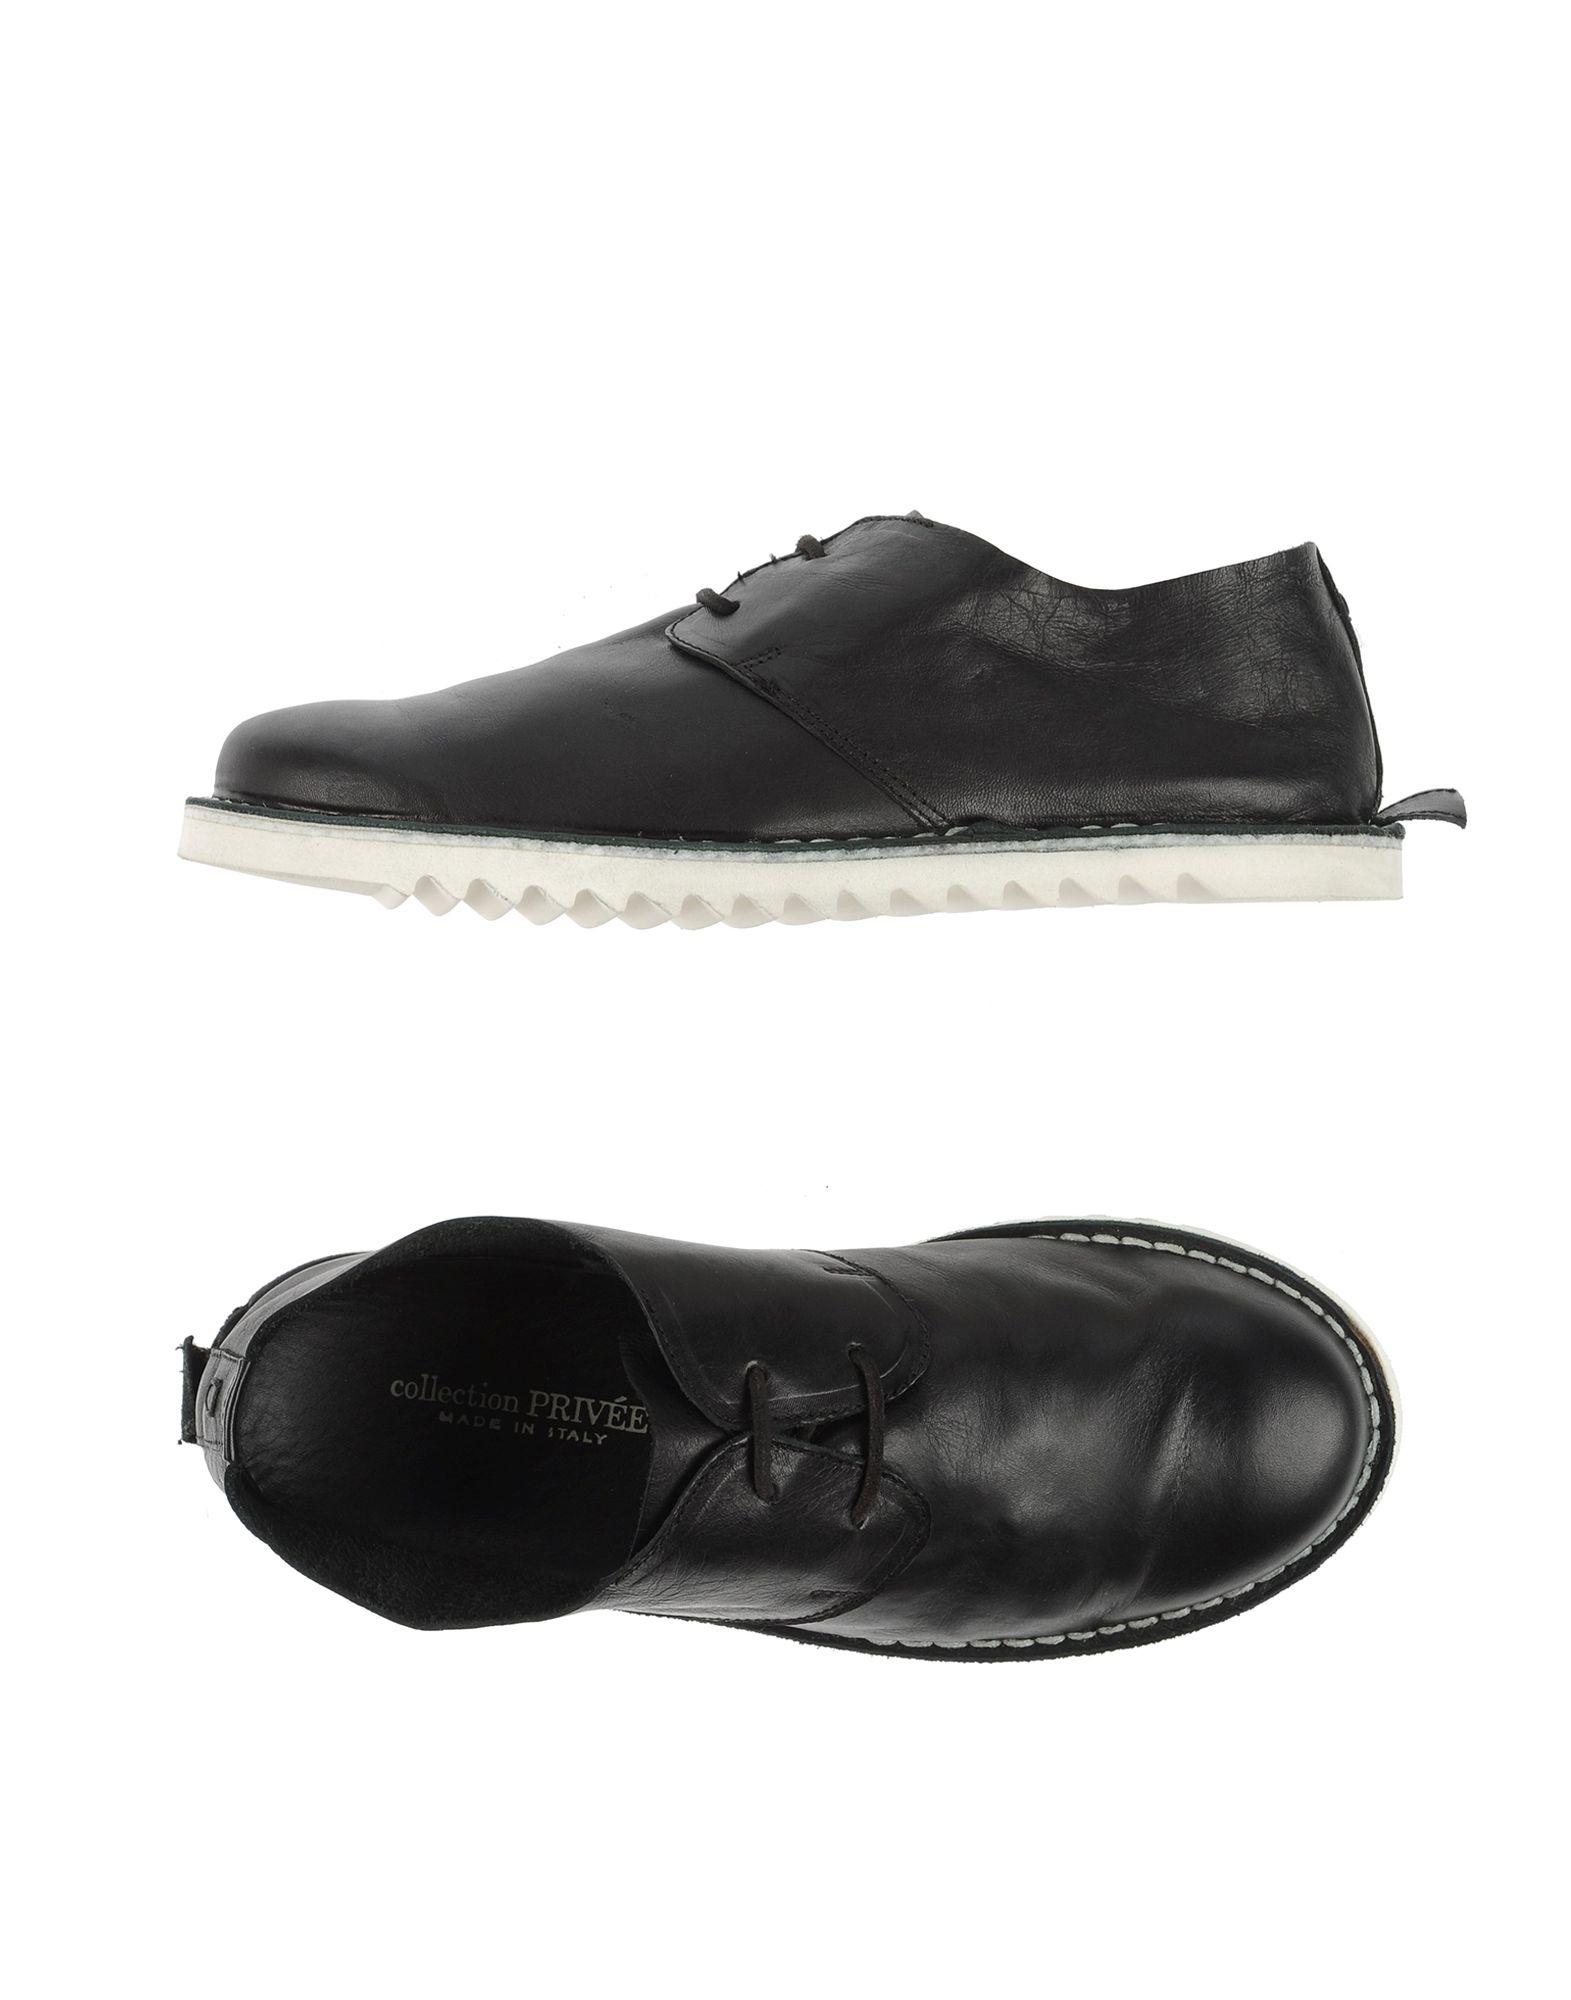 FOOTWEAR - Lace-up shoes Collection Priv yhBEh